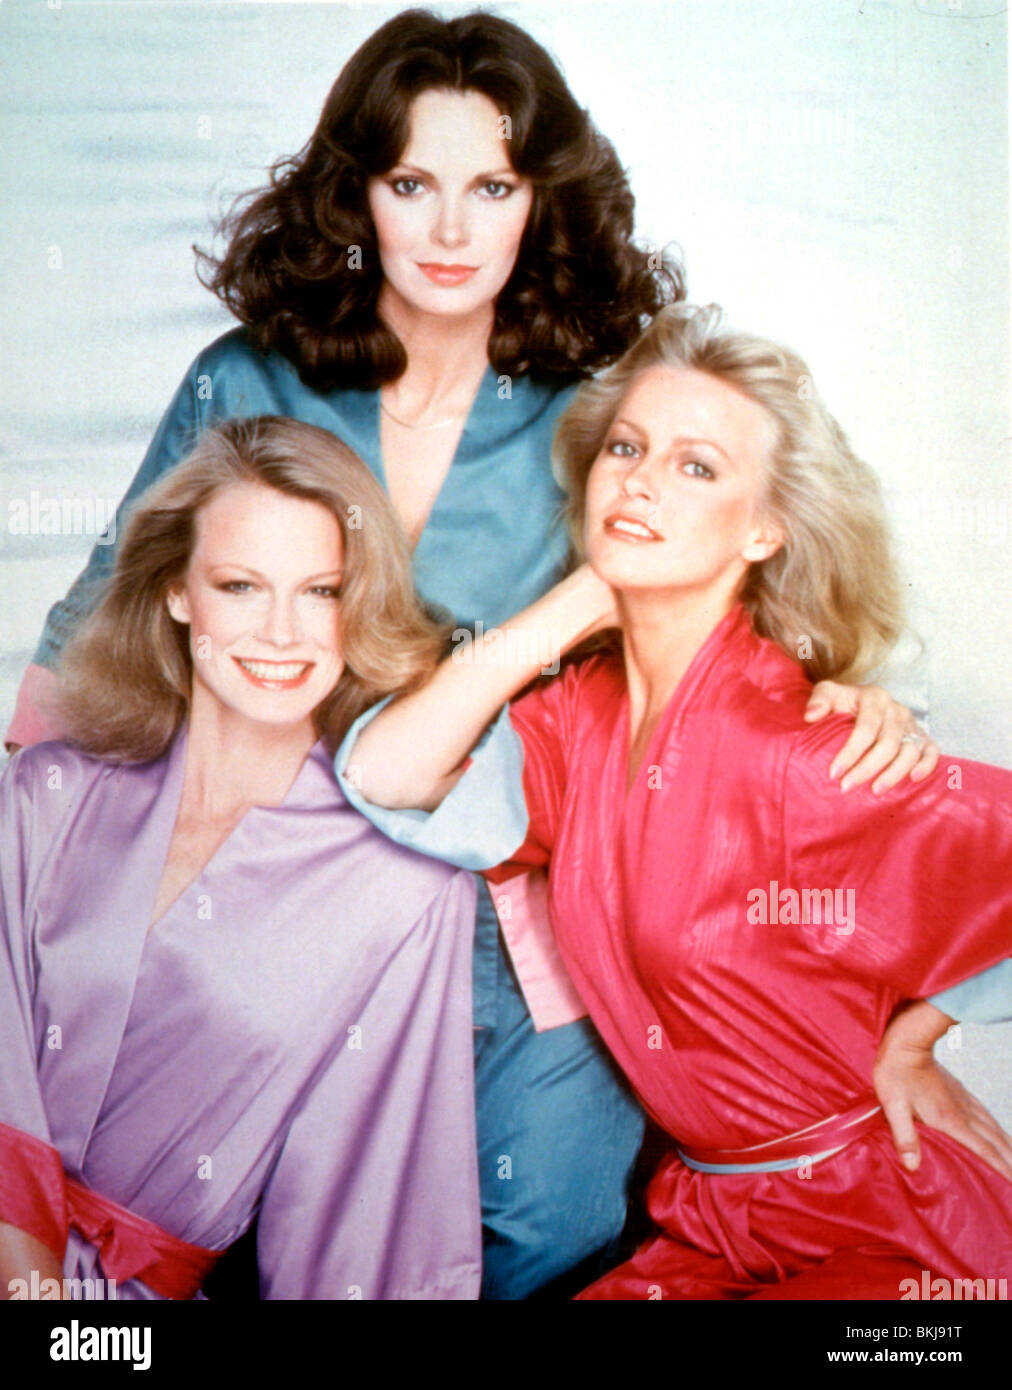 Shelley Hack United States Shelley Hack United States new picture